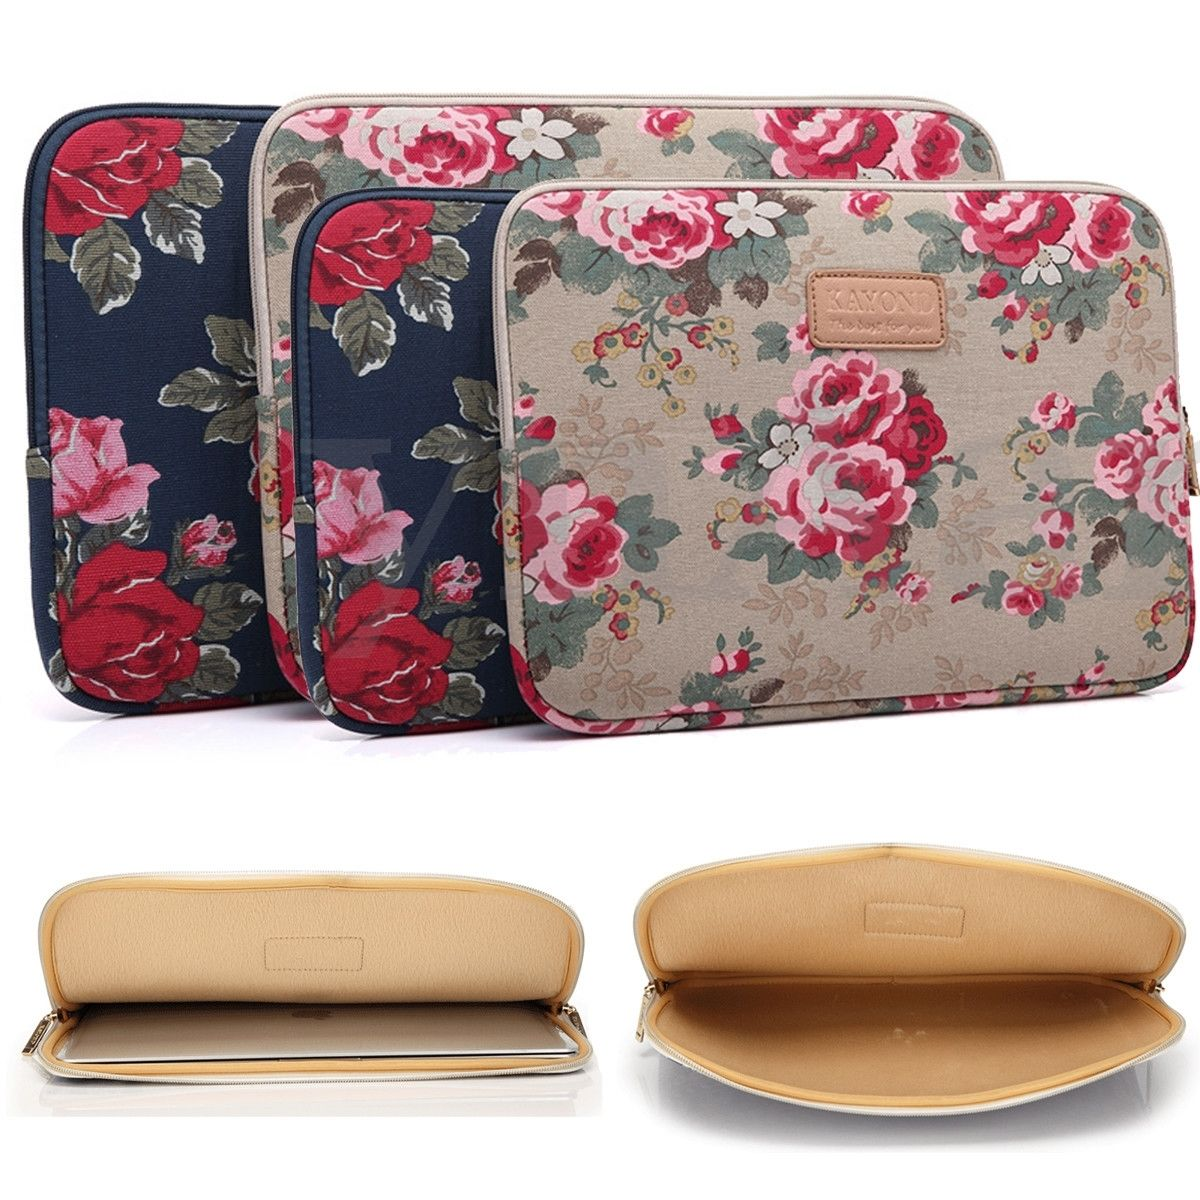 Notebook Peony Canvas Sleeve Case Bag Pouch For 13 15 Macbook Air Pro Laptop Cute Laptop Cases Bags Laptop Sleeves